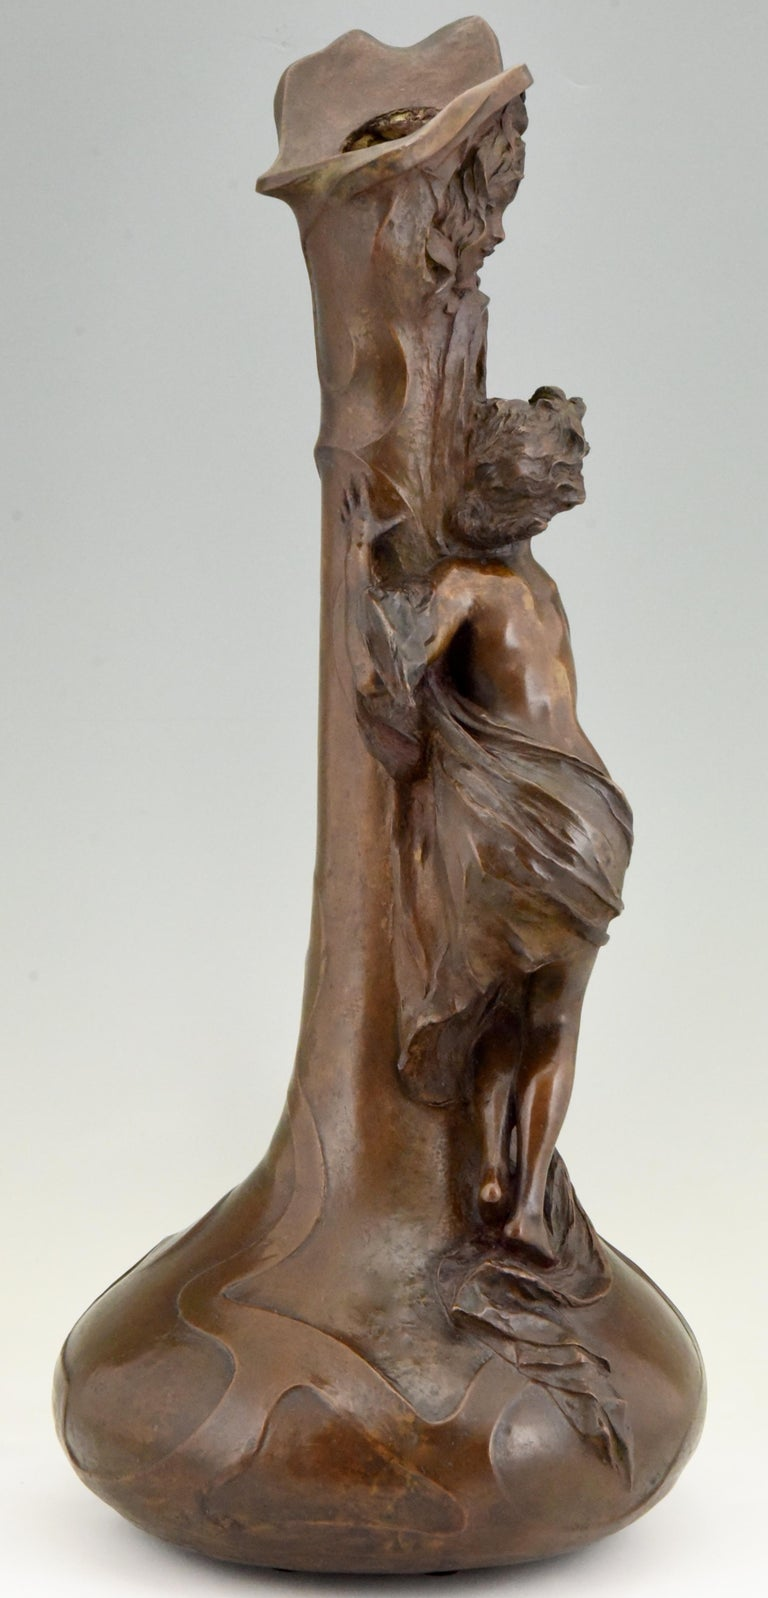 20th Century Tall Art Nouveau Bronze Vase Lady at a Fountain Lucas Madrassi, France, 1900 For Sale